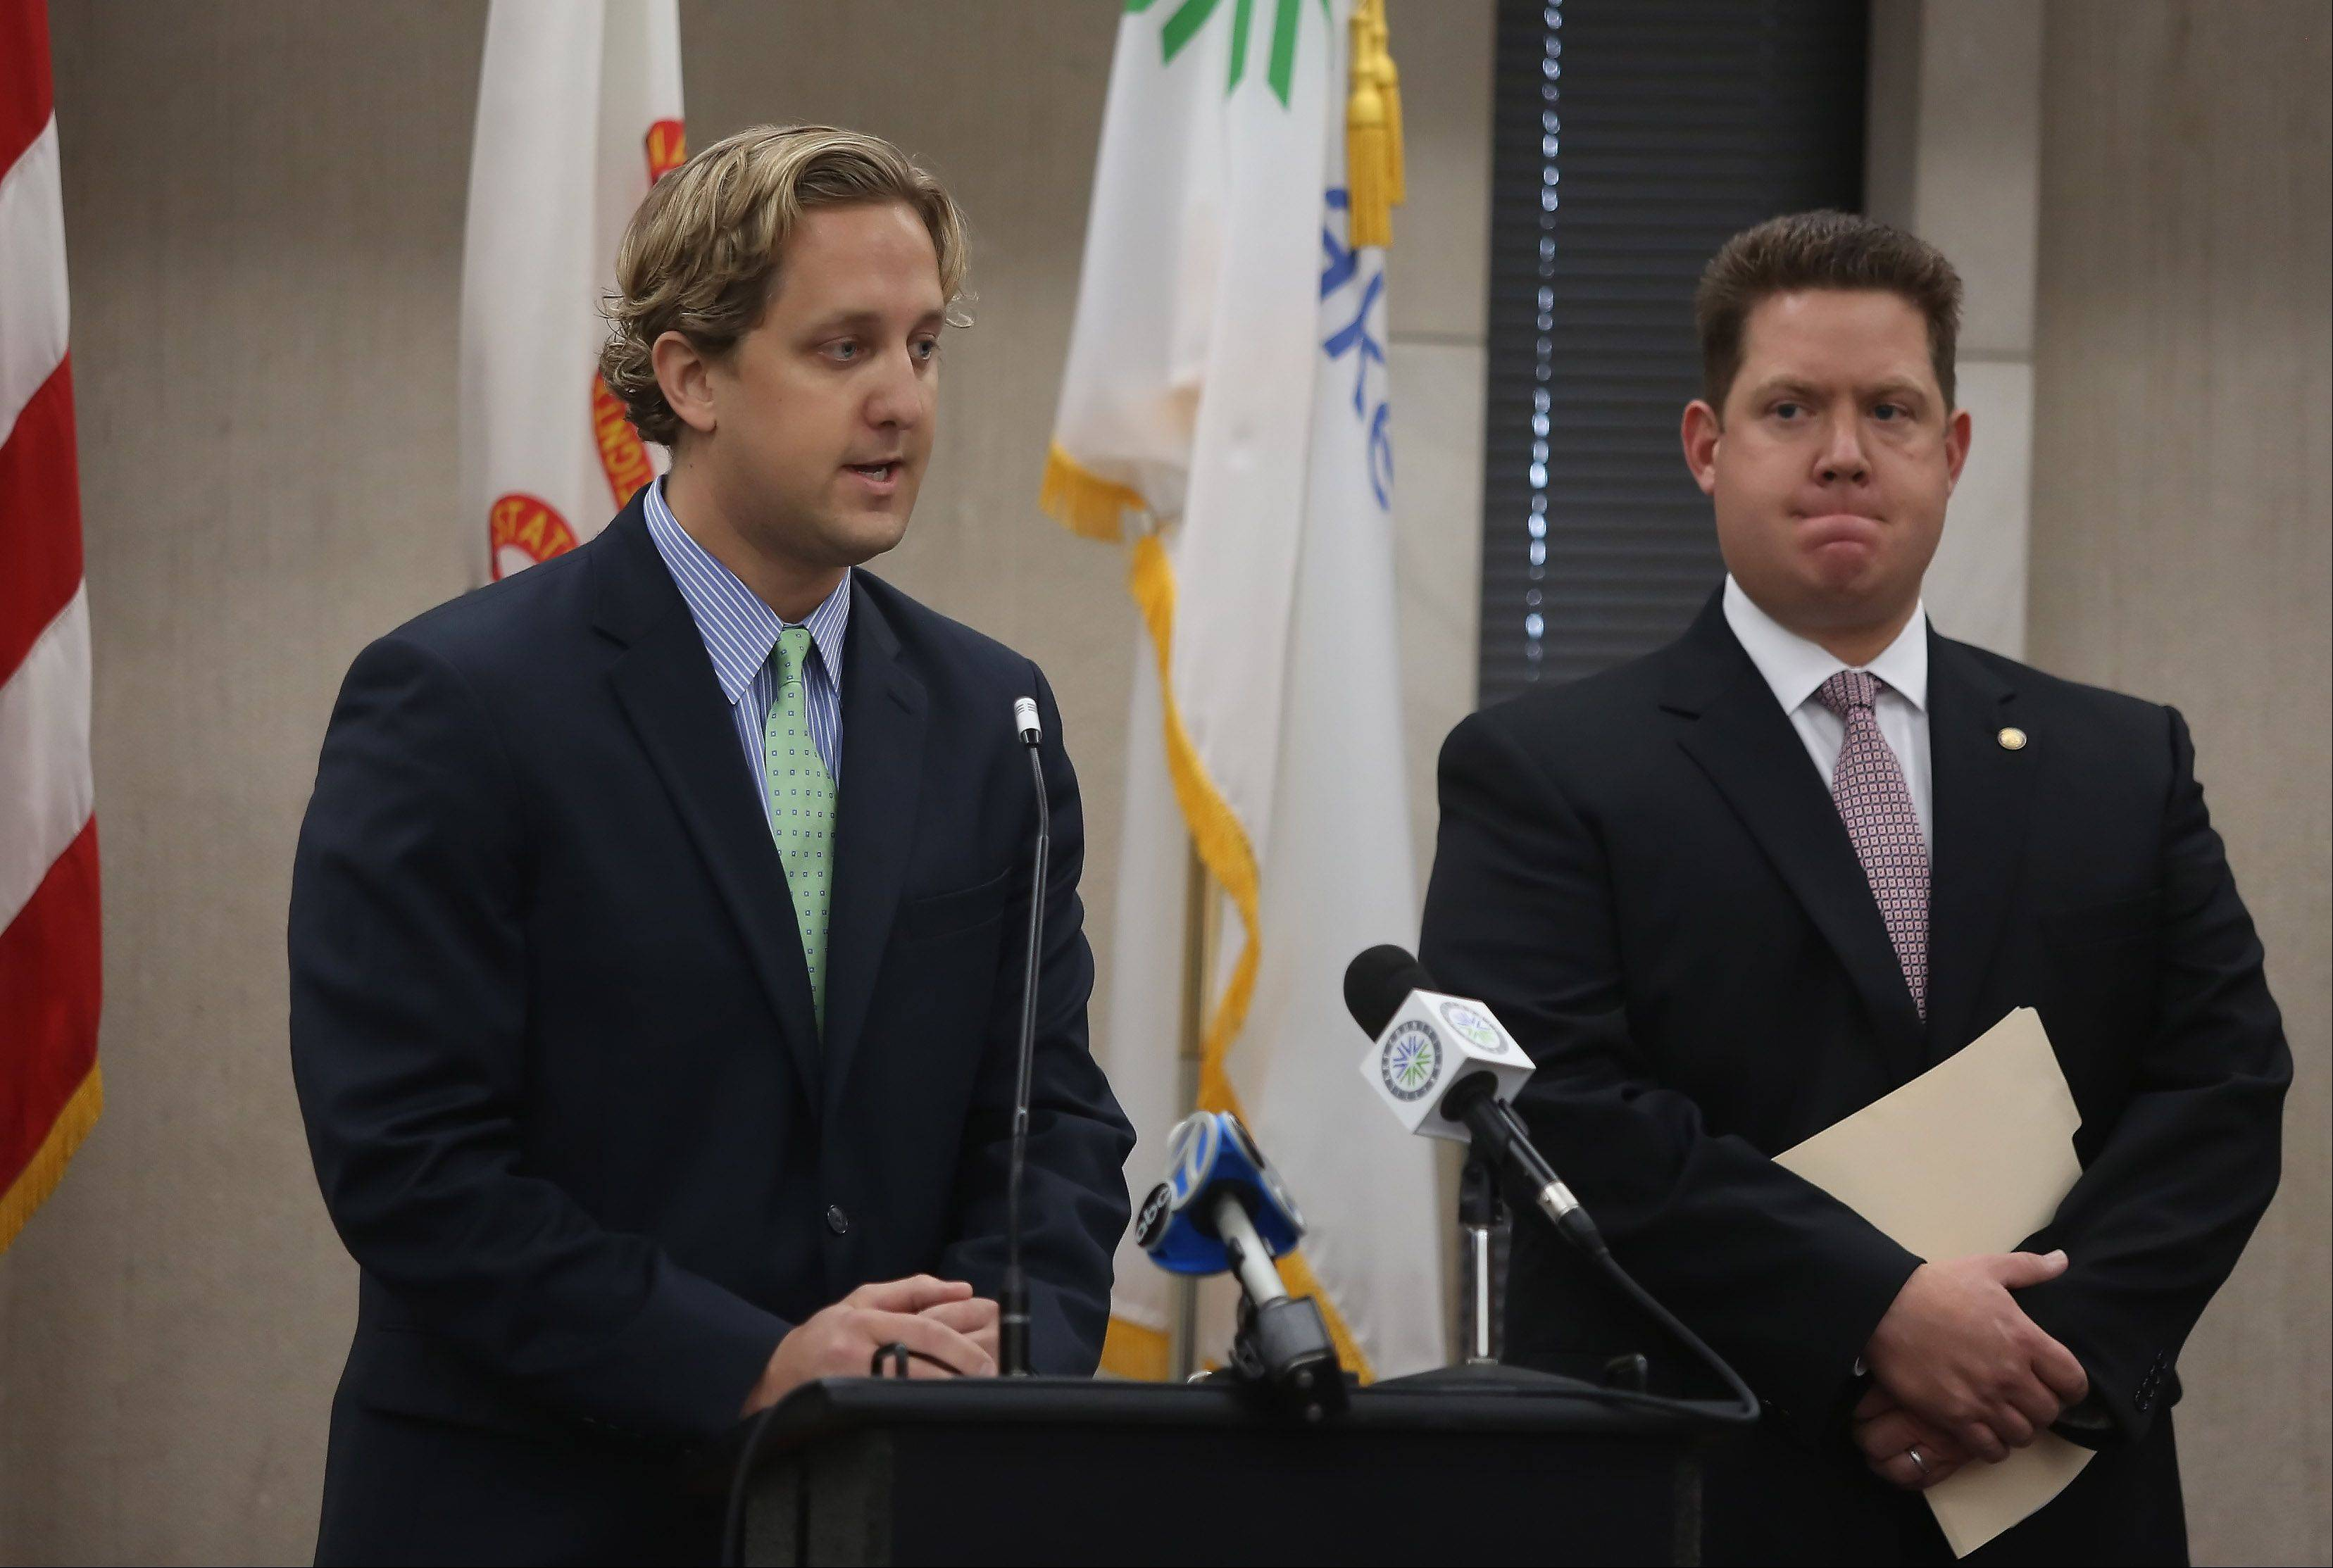 Gilbert R. Boucher II/gboucher@dailyherald.comLake County Board Chairman Aaron Lawlor, left, and Lake County State's Attorney Mike Nerheim announced Tuesday at the Lake County Building in Waukegan that they have filed a lawsuit challenging the constitutionality of House Bill 2418. The bill removes the authority of the county clerk to administer elections and establishes an elections commission without a voter referendum, in Lake County only.